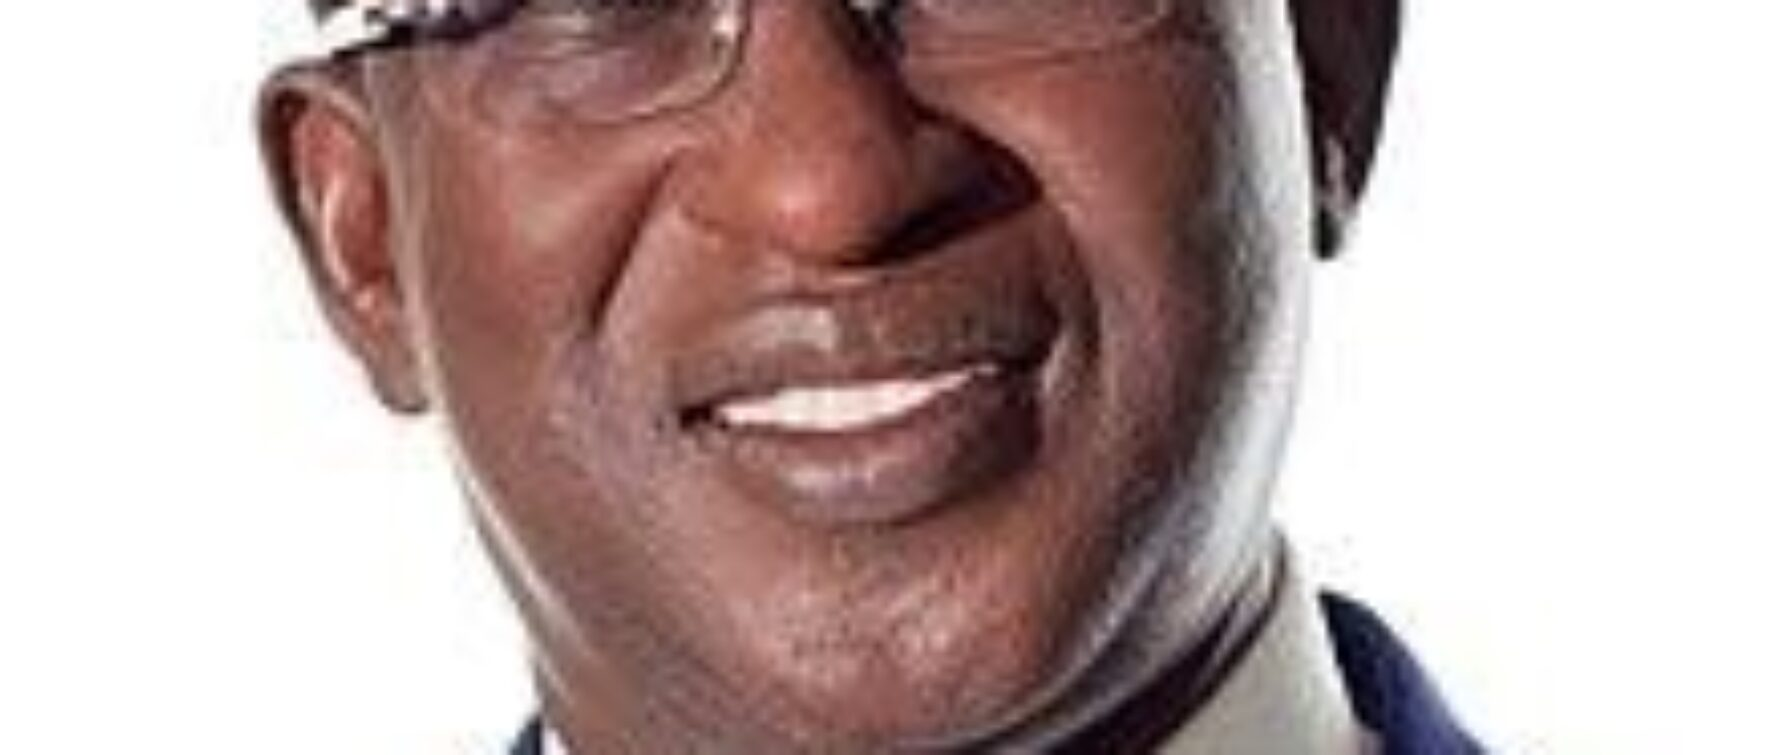 The passing away of Soumailia Cissé (Mali) a great loss for peace in the Sahel Region